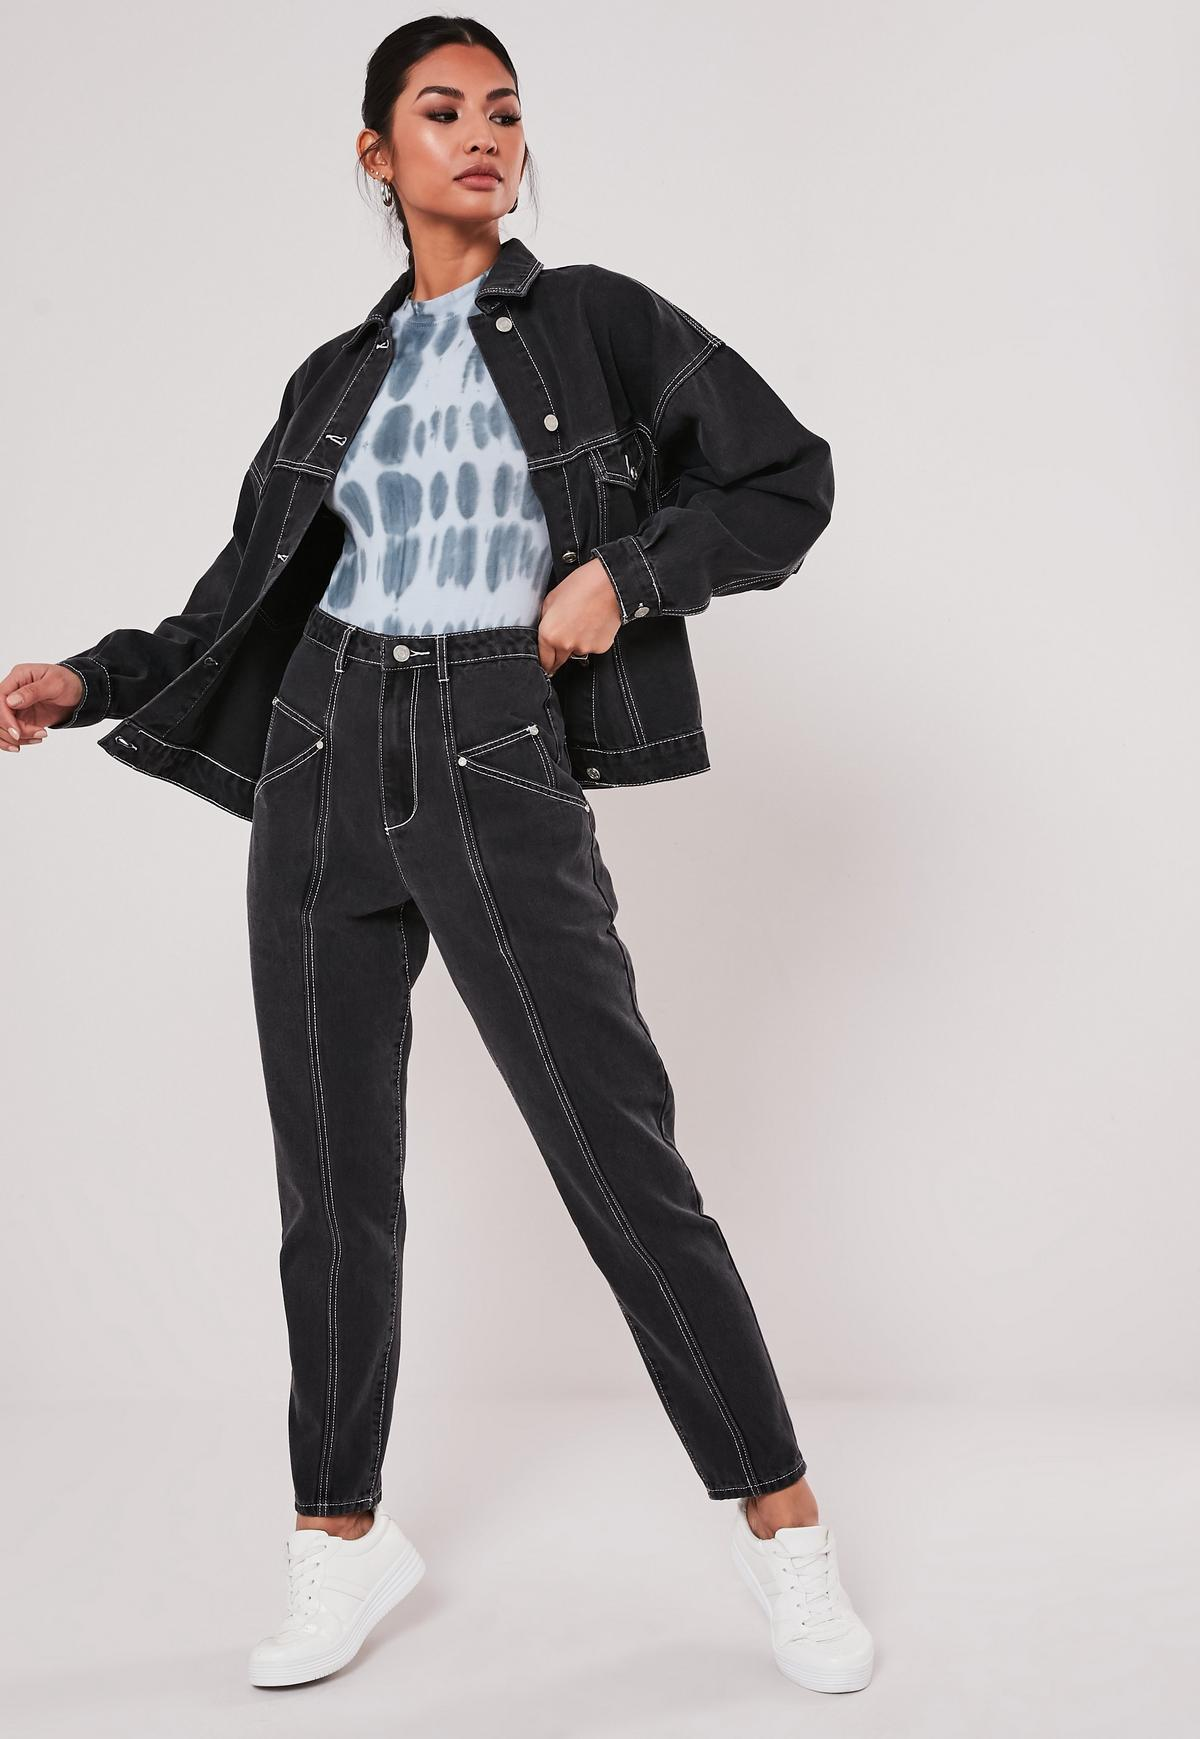 Party outfit schwarze jeans